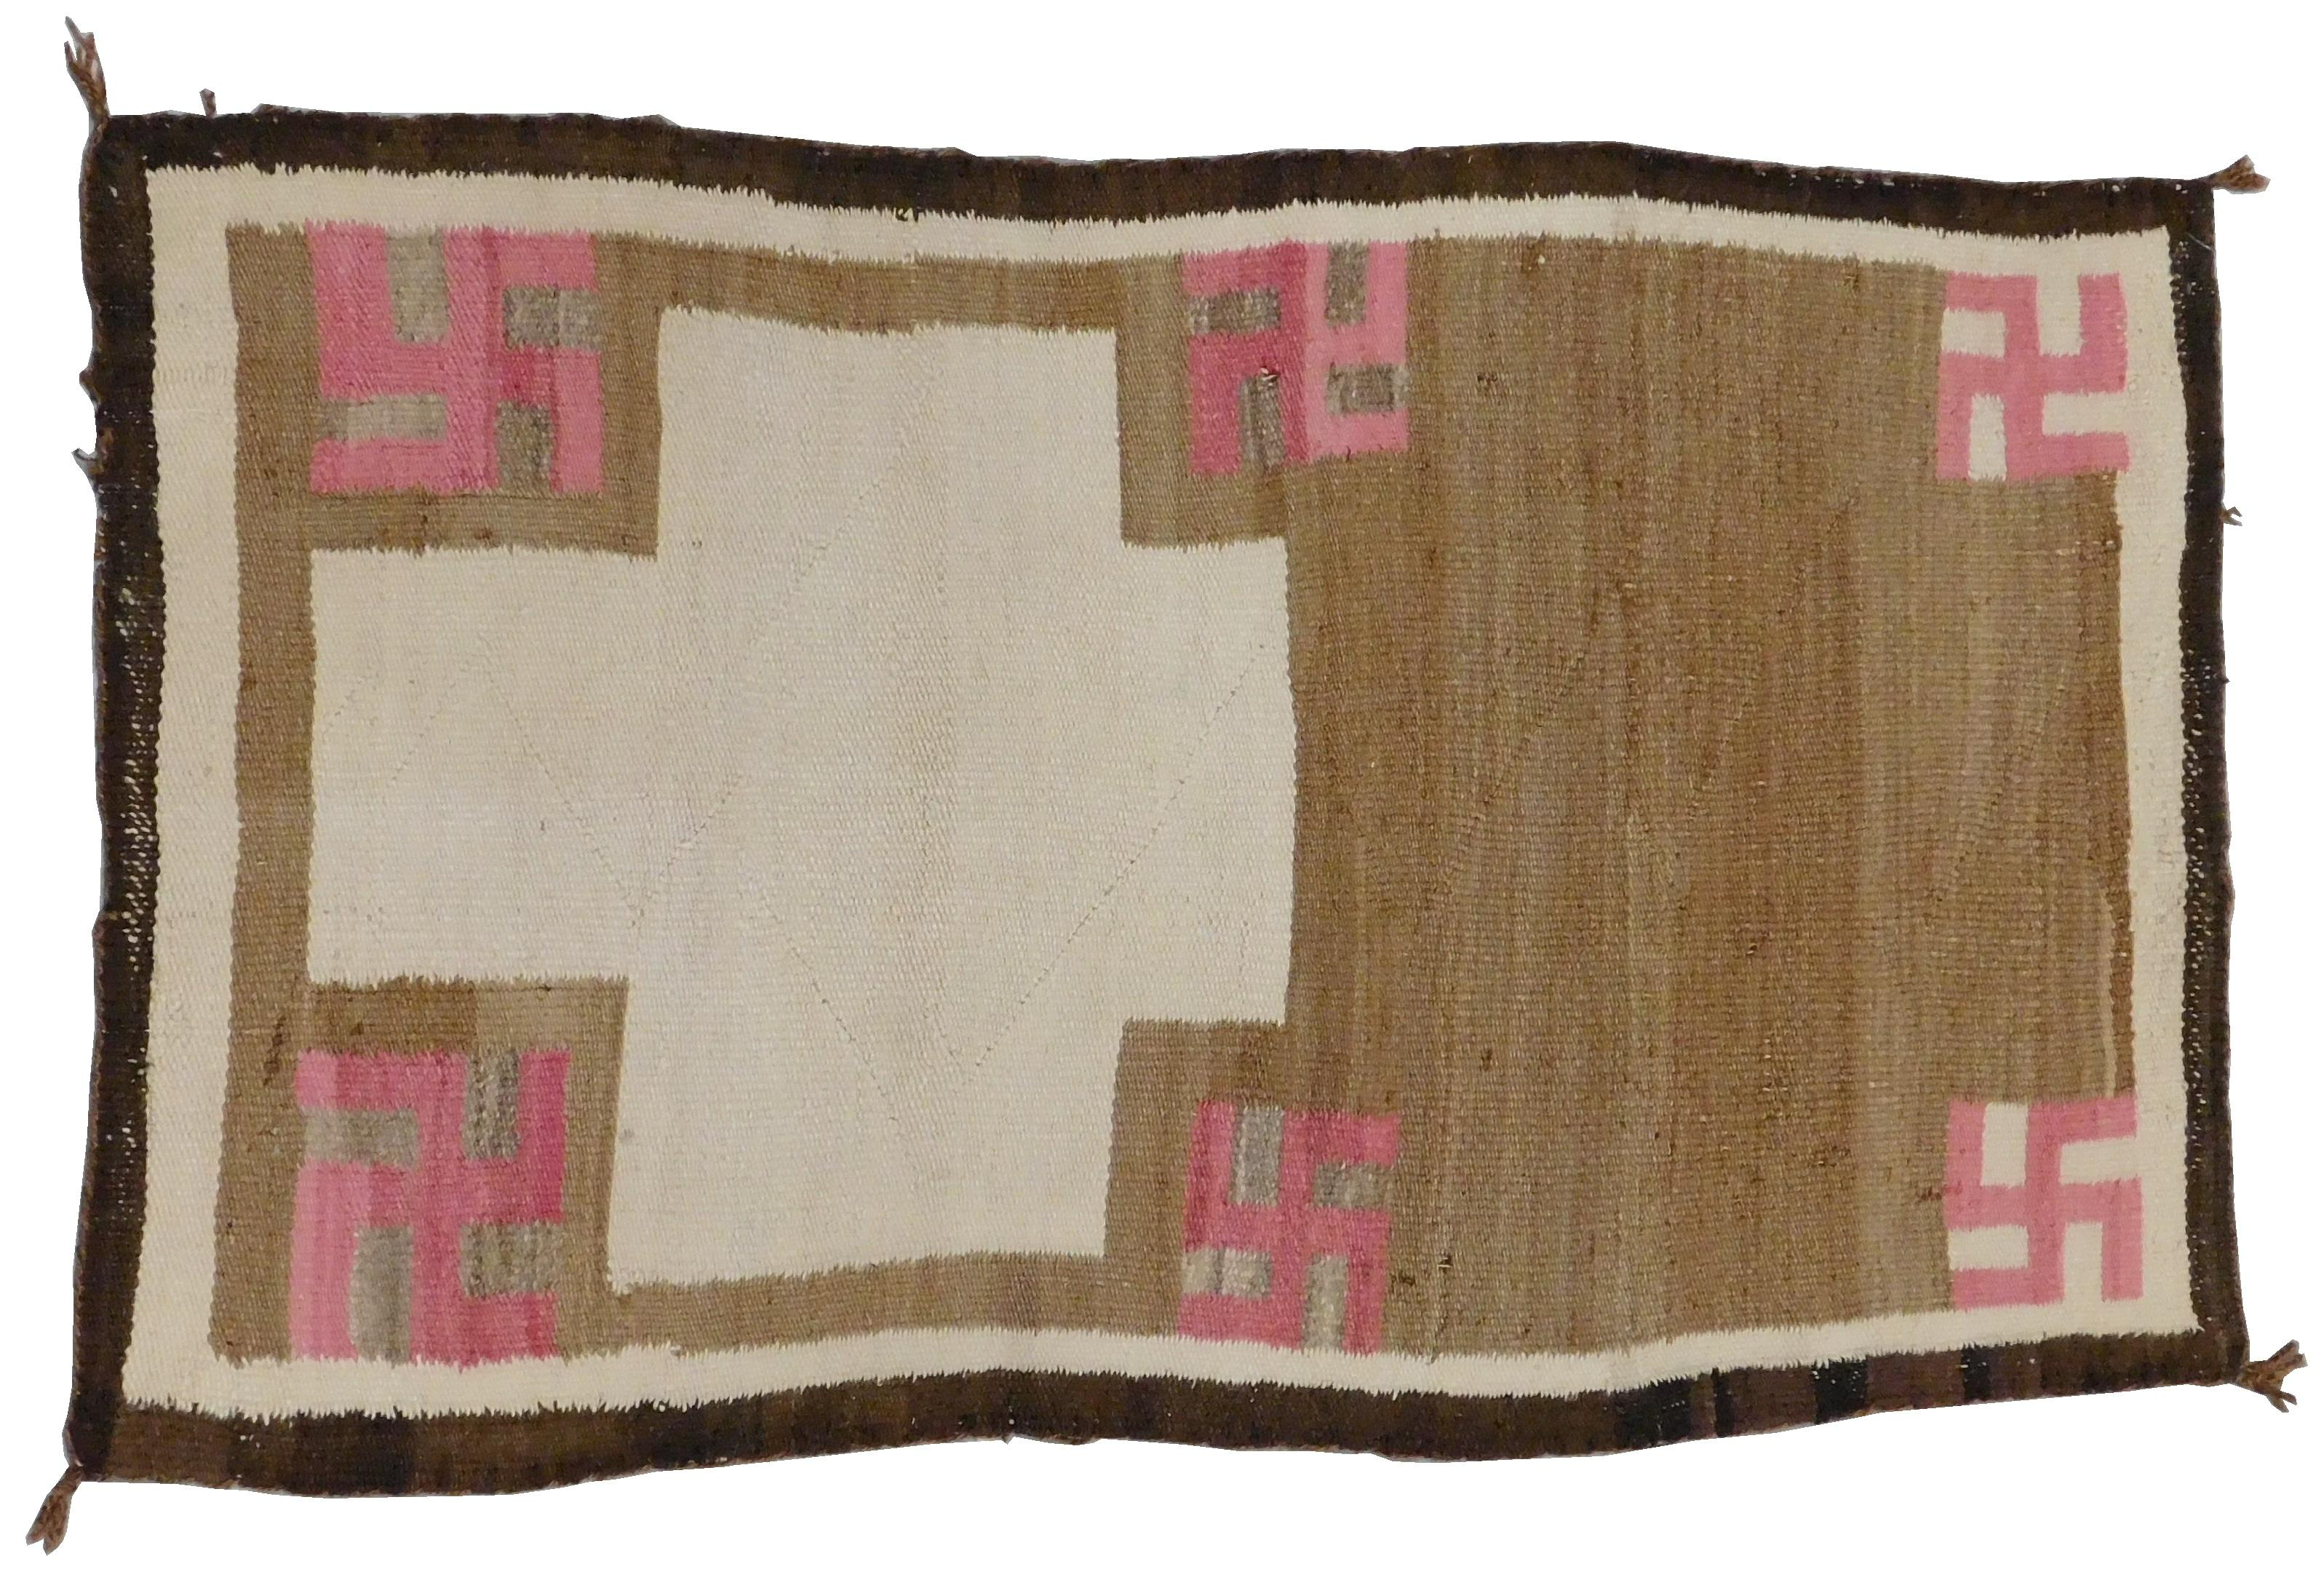 """RUG: Native American Navajo rug, 4' 5"""" x 2' 6"""", wool on wool, off-centered cross design surrounded by rose colored whirling log symb."""